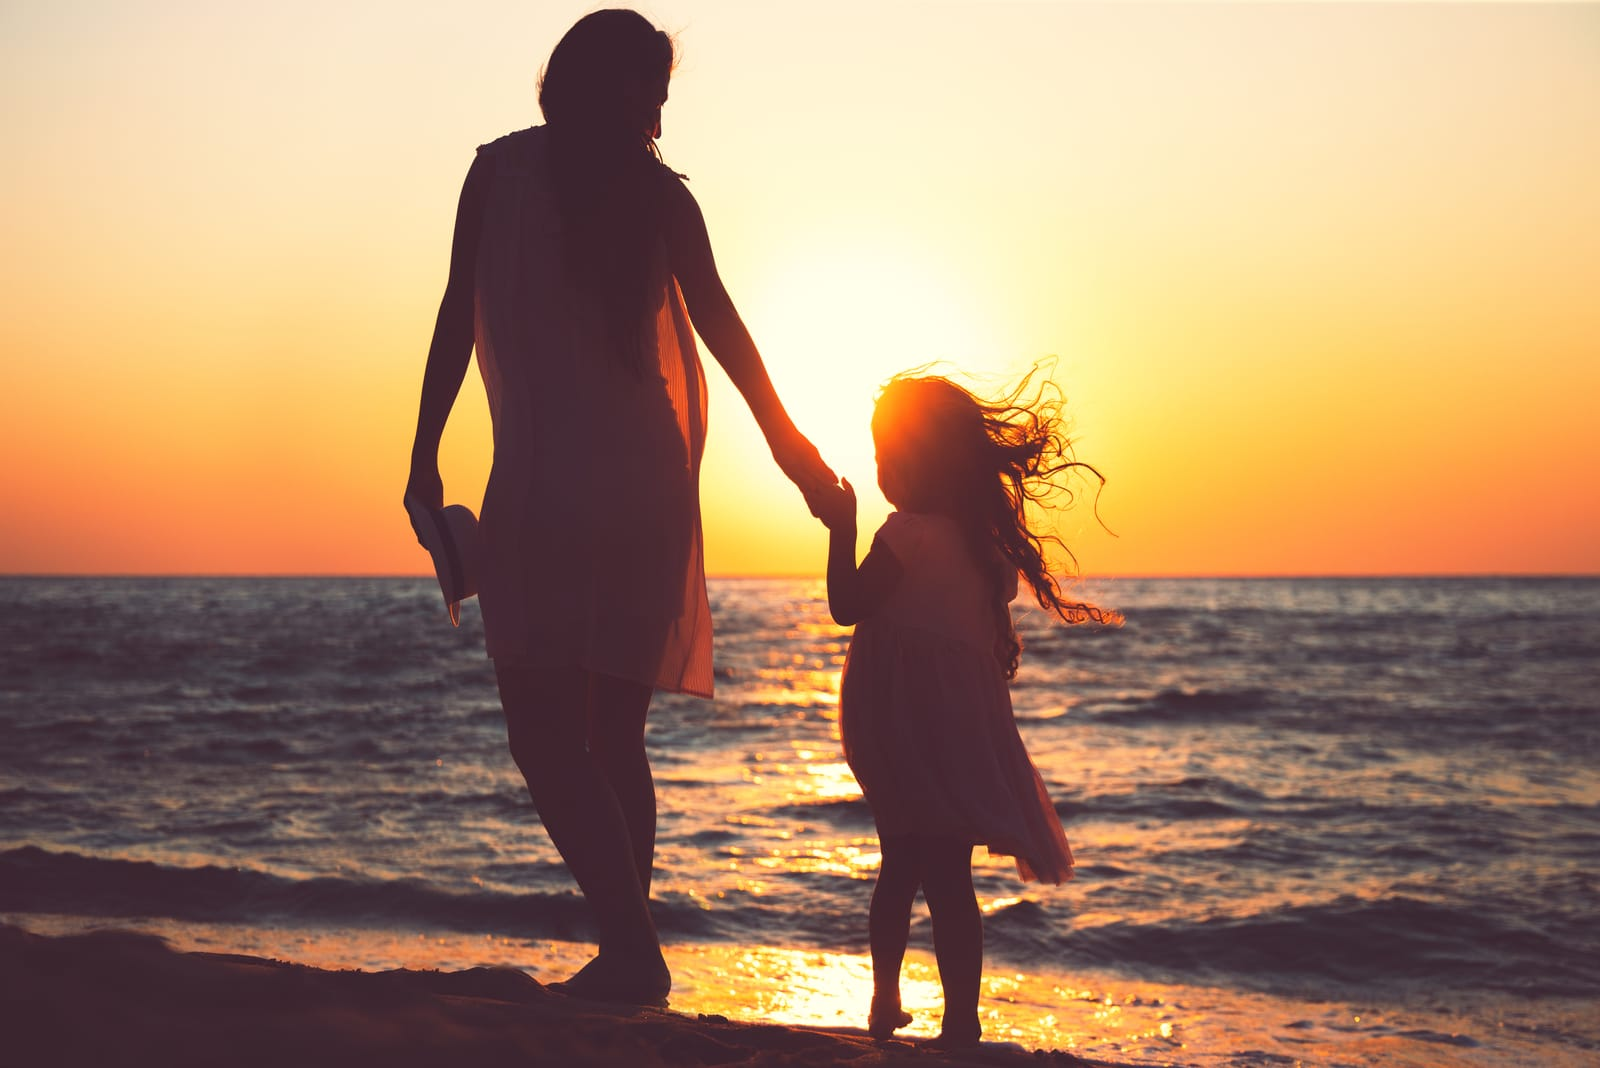 a woman walks the beach with a child